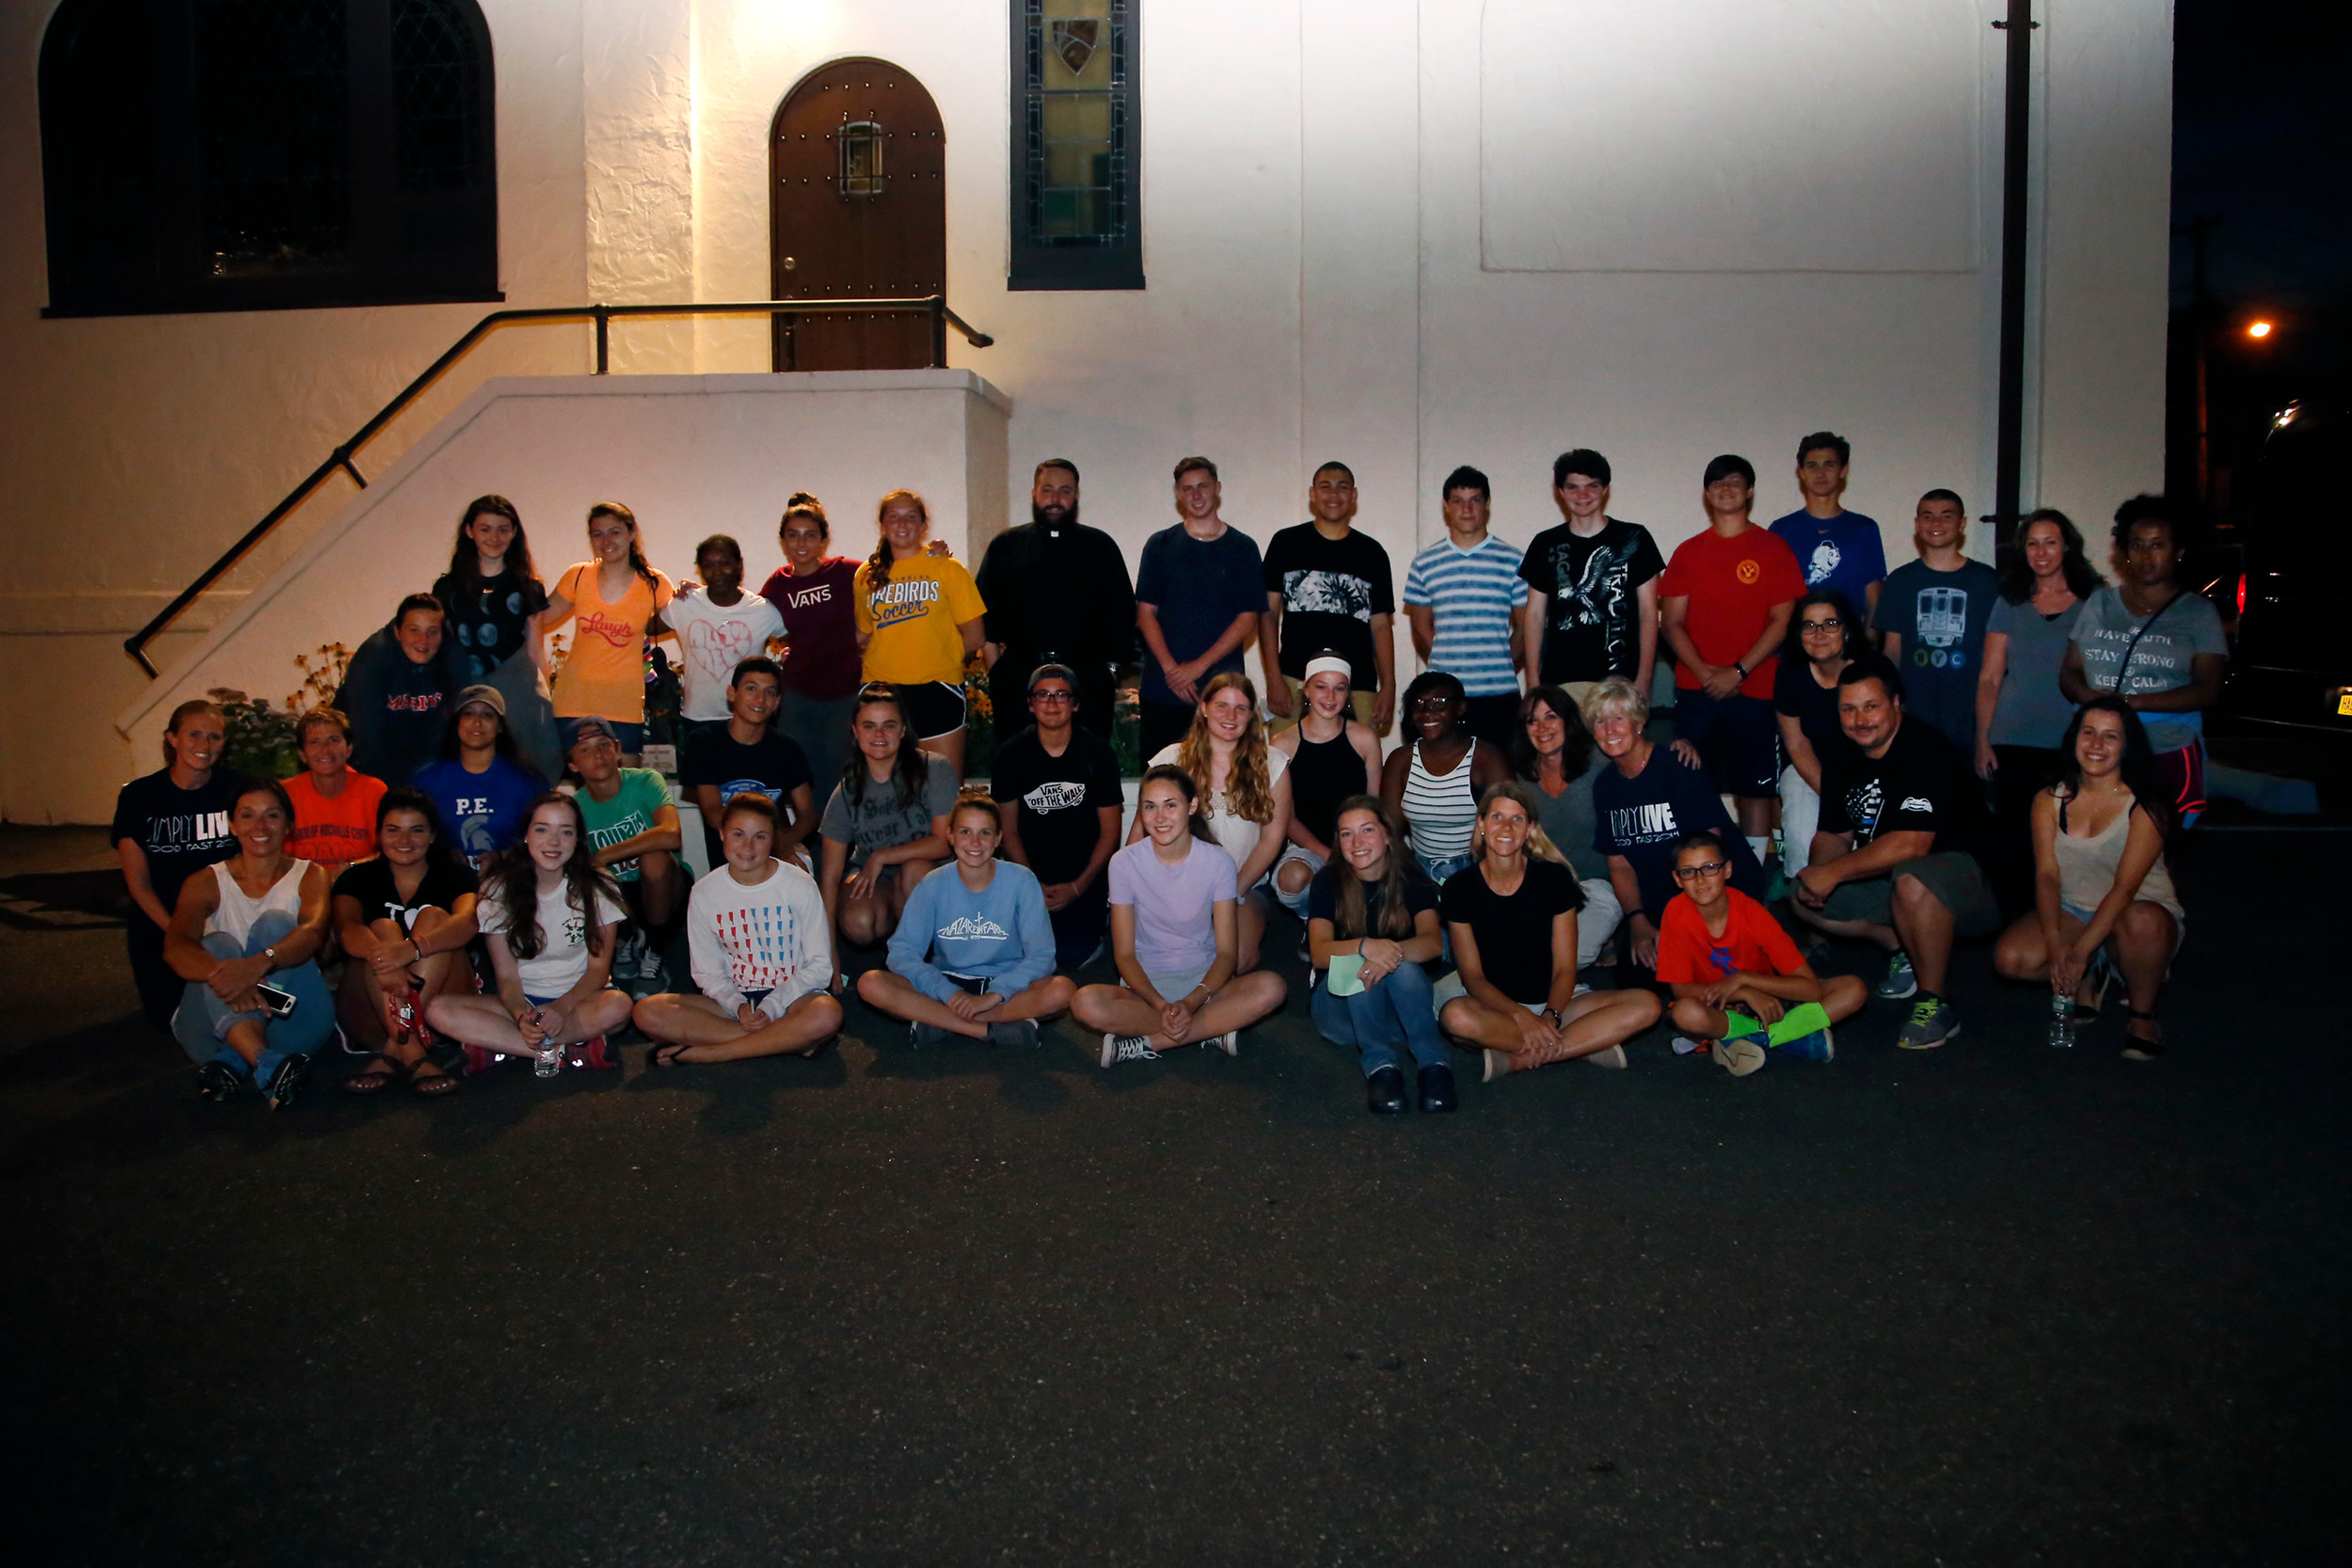 Midnight Run volunteers gathered at Our Lady of Lourdes Church prior to leaving for Manhattan to help the city's homeless.